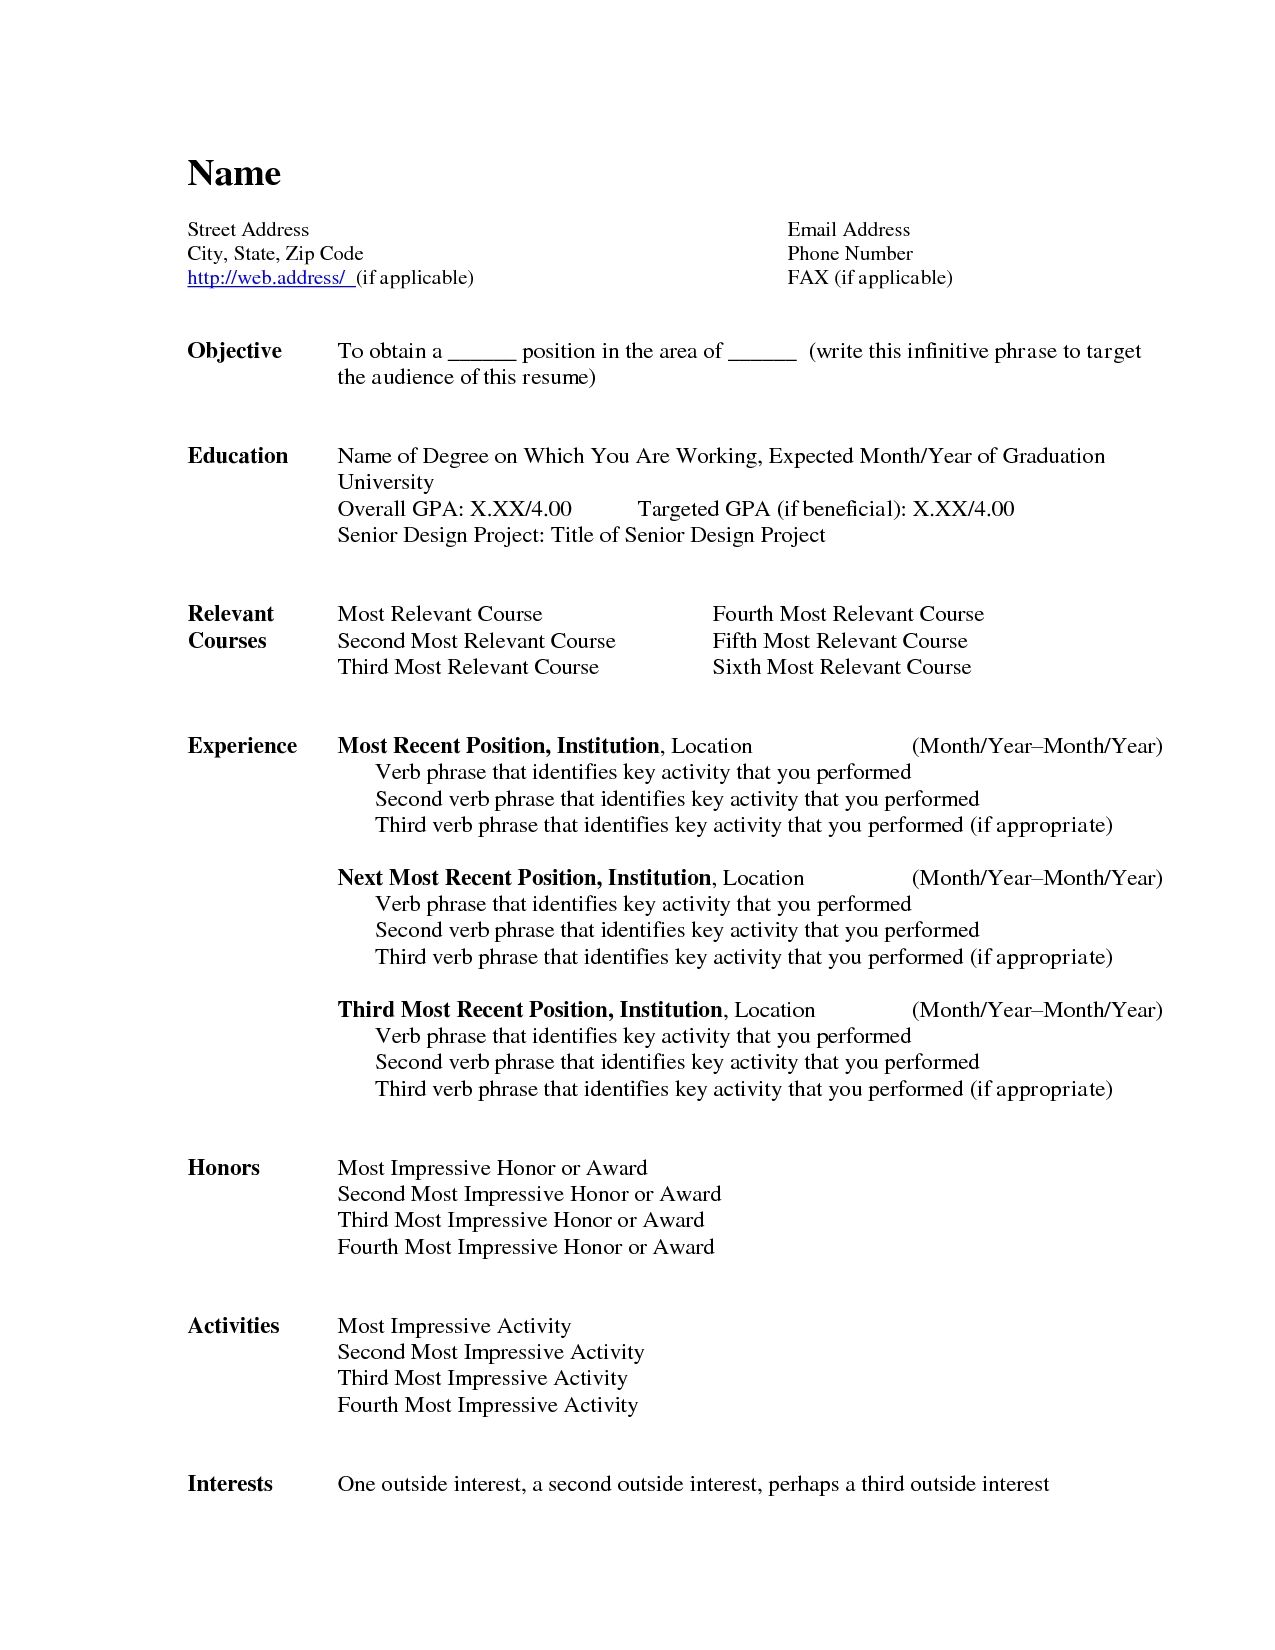 Free Resume Templates For Microsoft Word Photo Ms Word Resume Format Images The Ms Word Resume Format